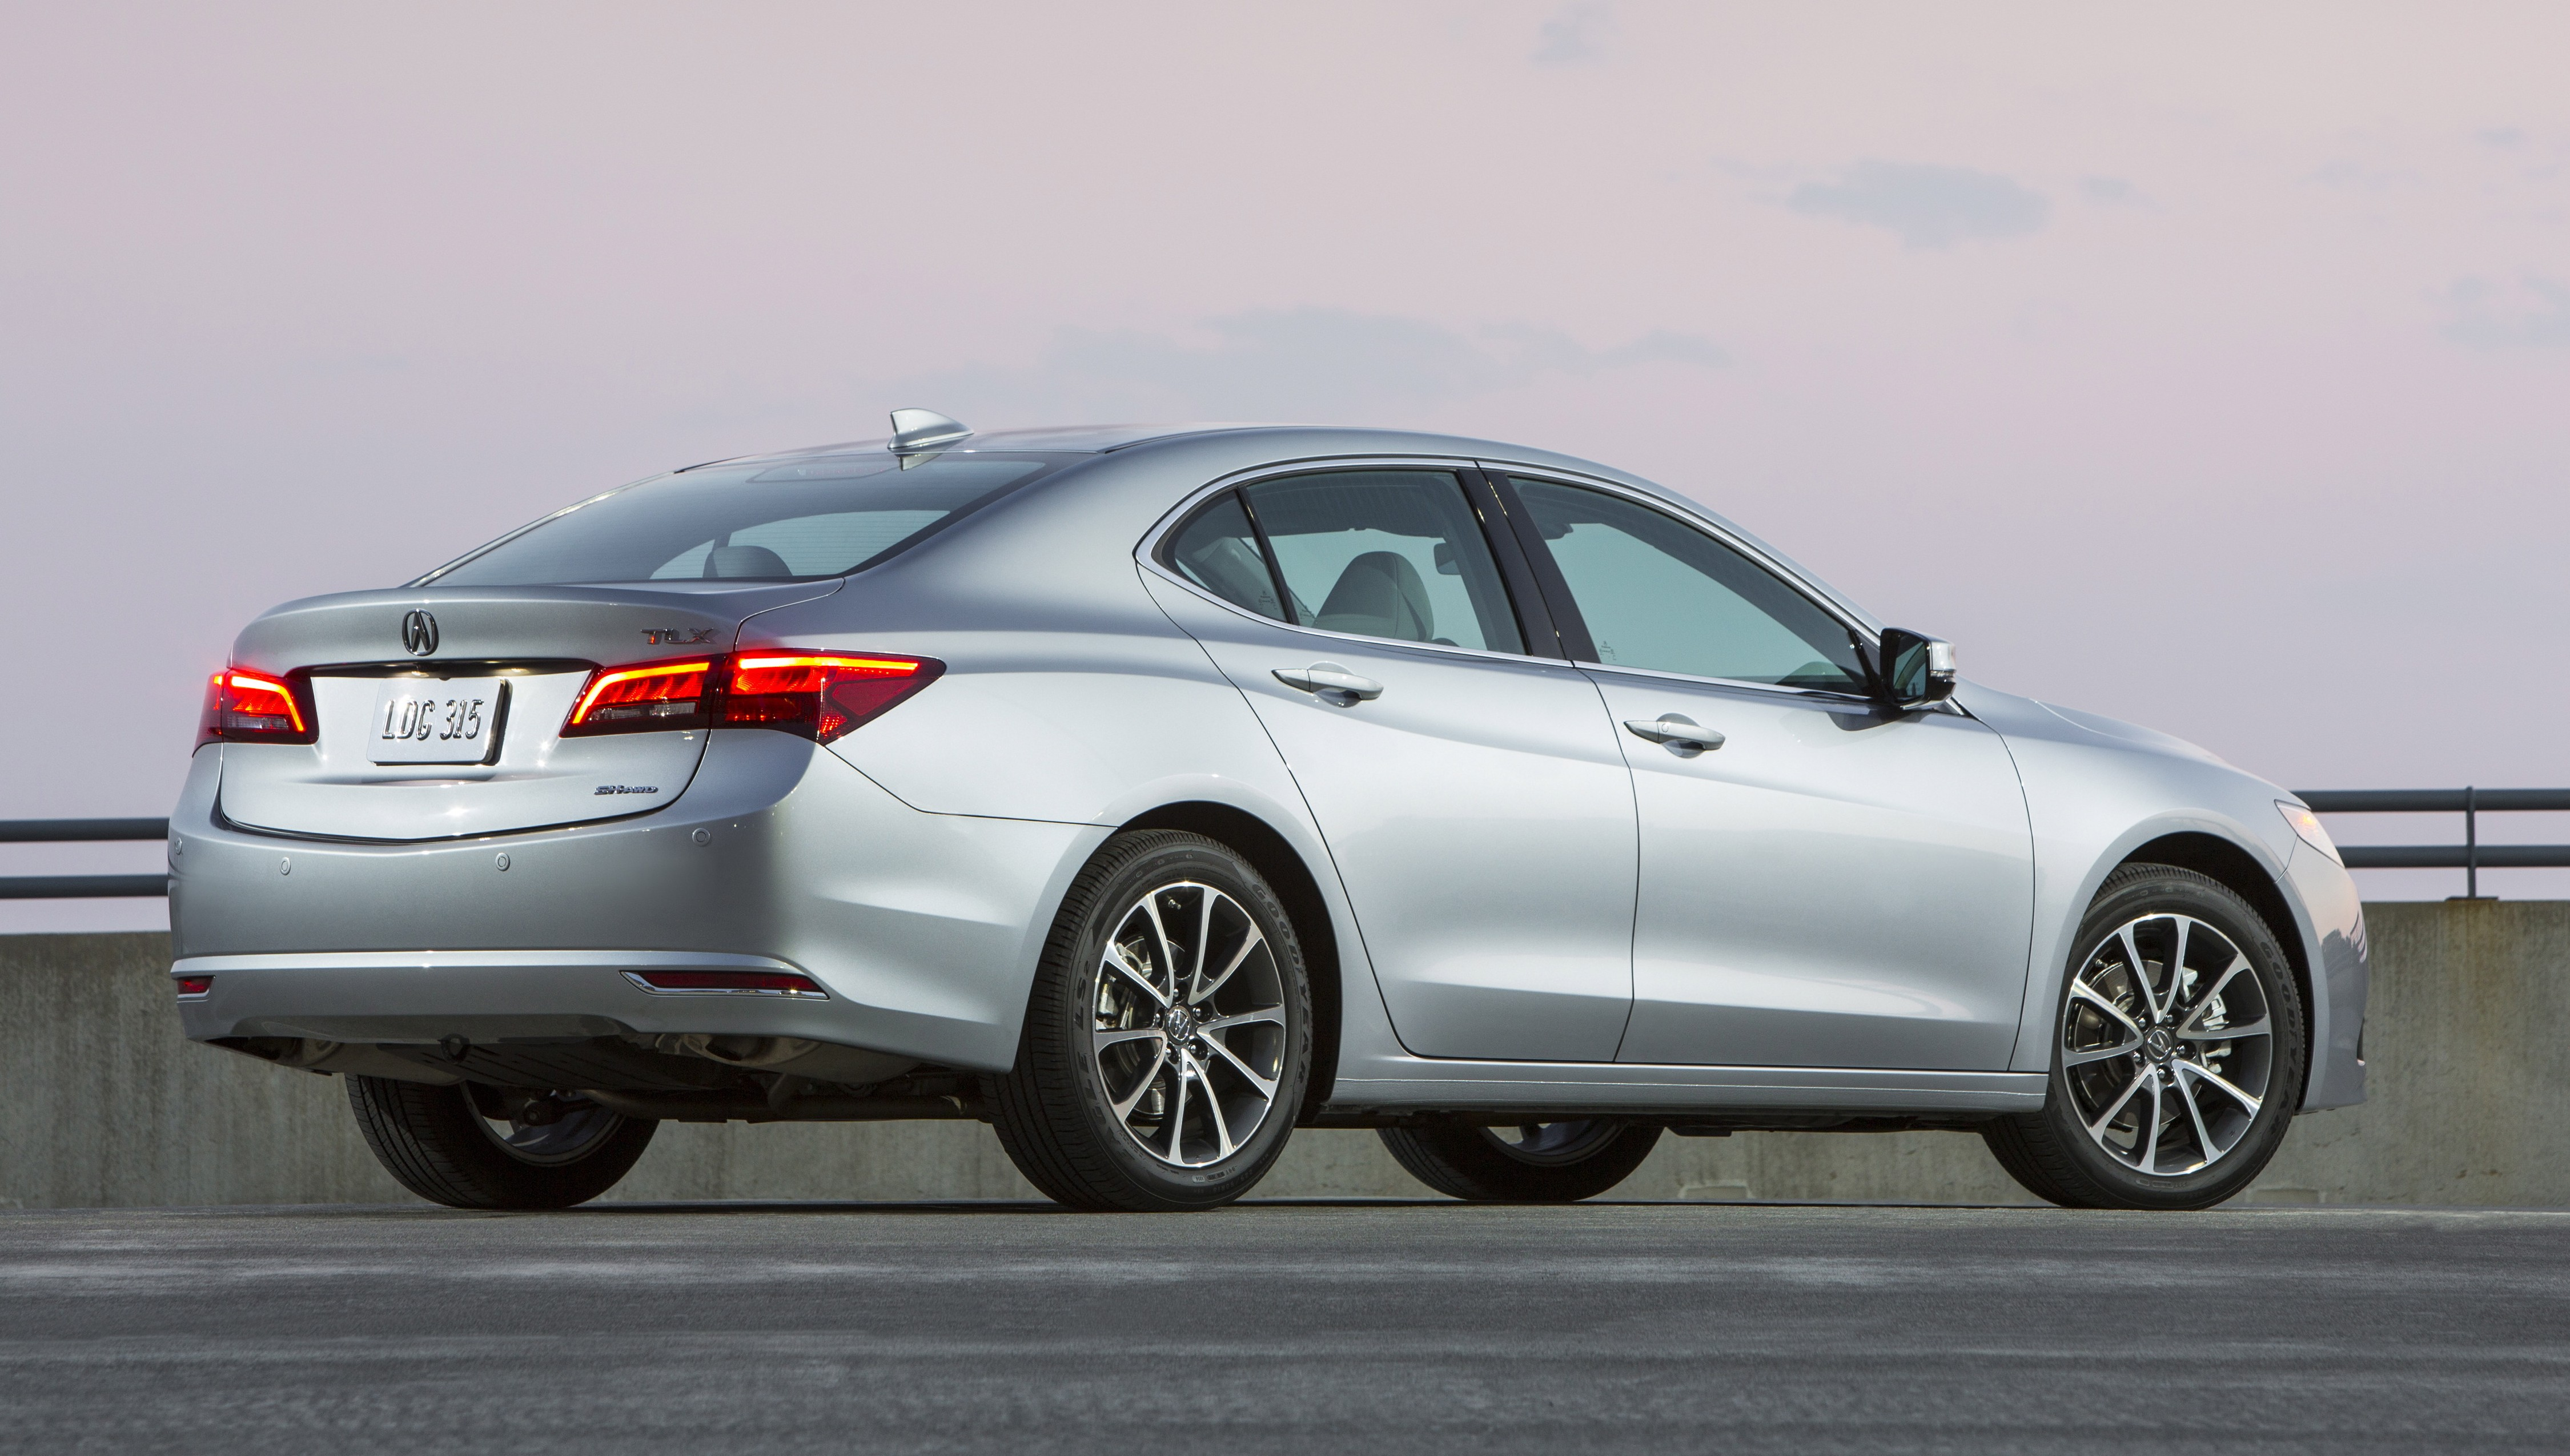 5th Generation Acura TL Reviews - Page 13 - AcuraZine - Acura Enthusiast Community